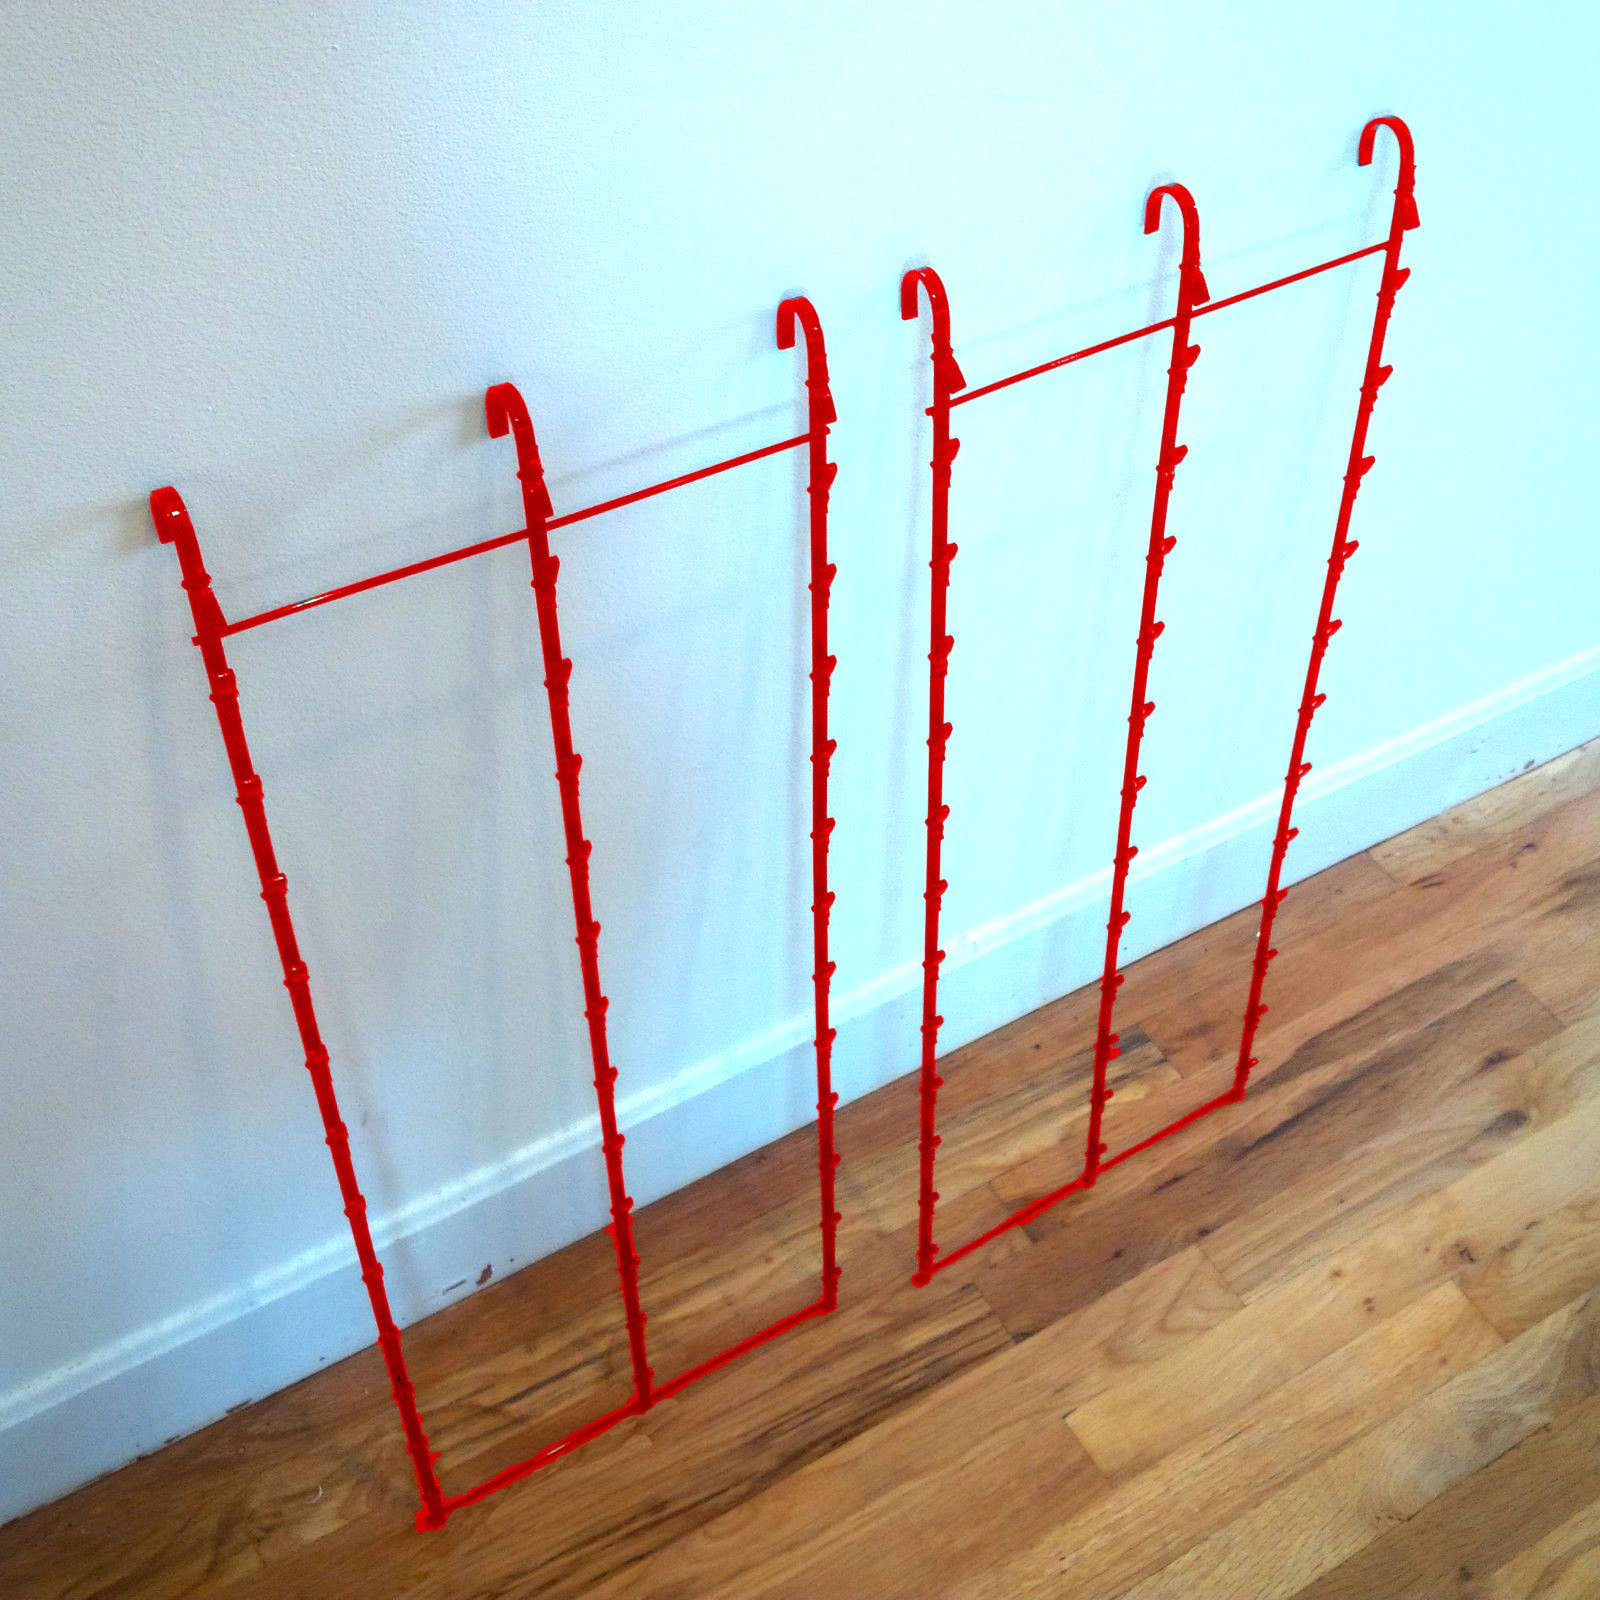 Two New 3 Strips 39 Clip Potato Chip, Candy & Snack Red Hanging Display Racks